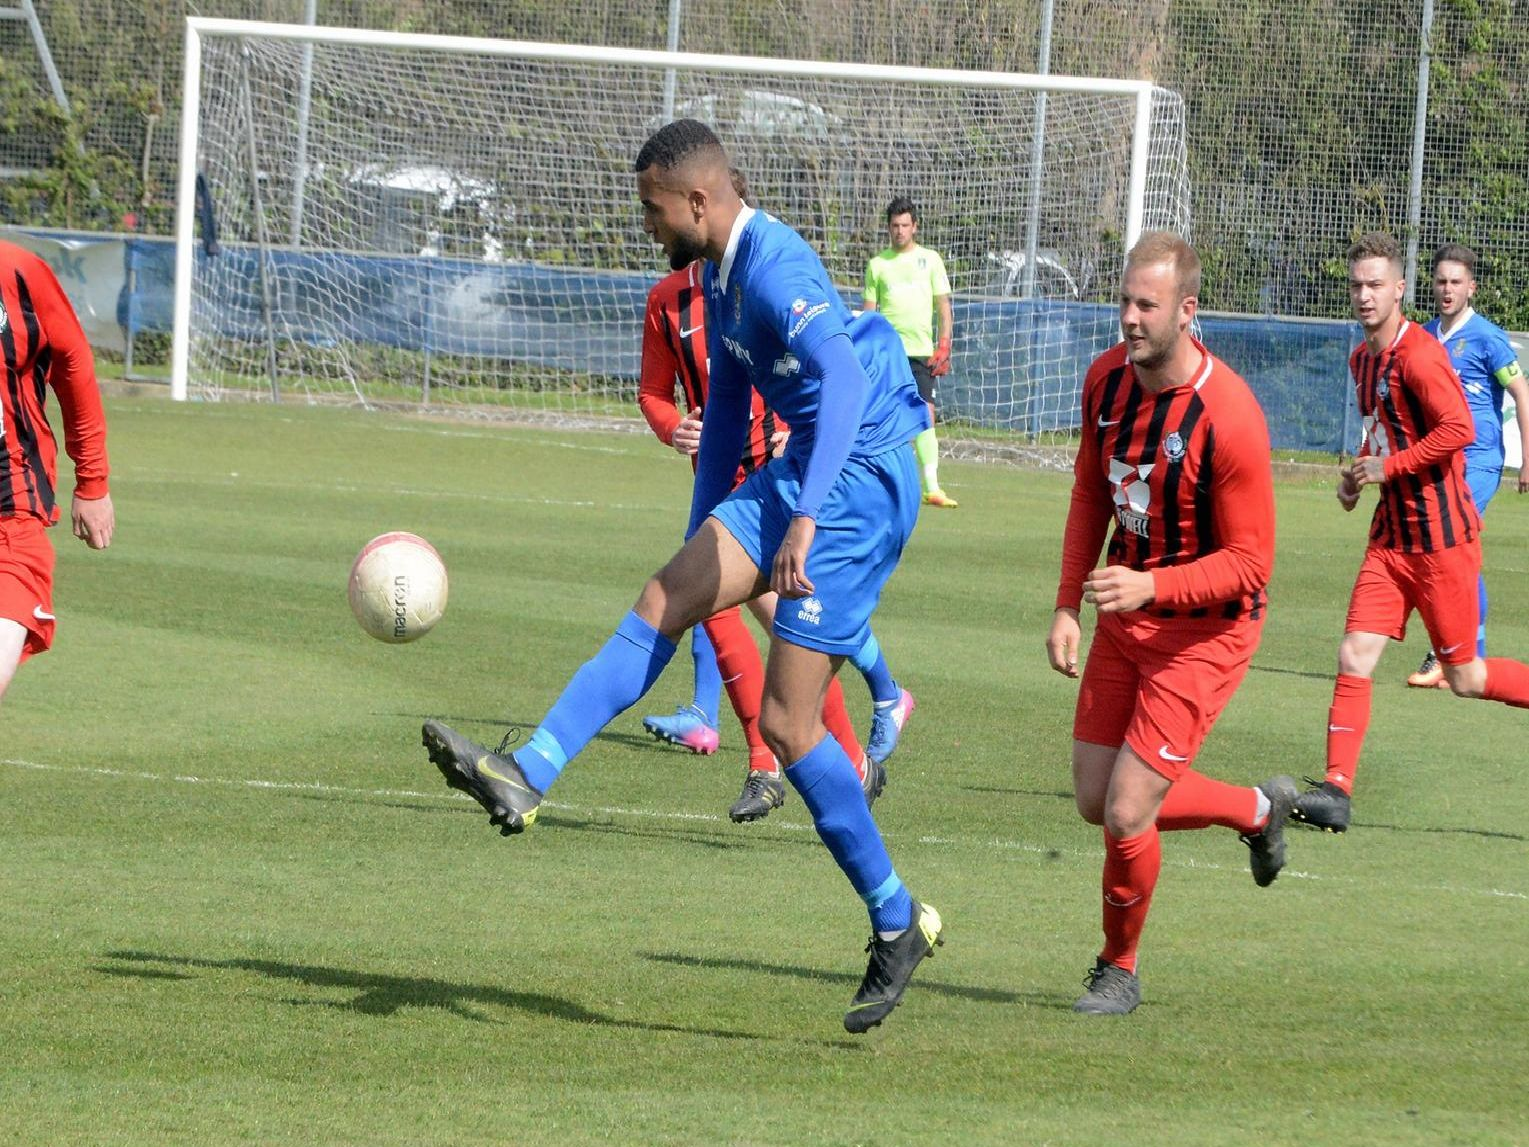 Action from Selsey v Worthing Utd at the High Street Ground / Picture by Kate Shemilt